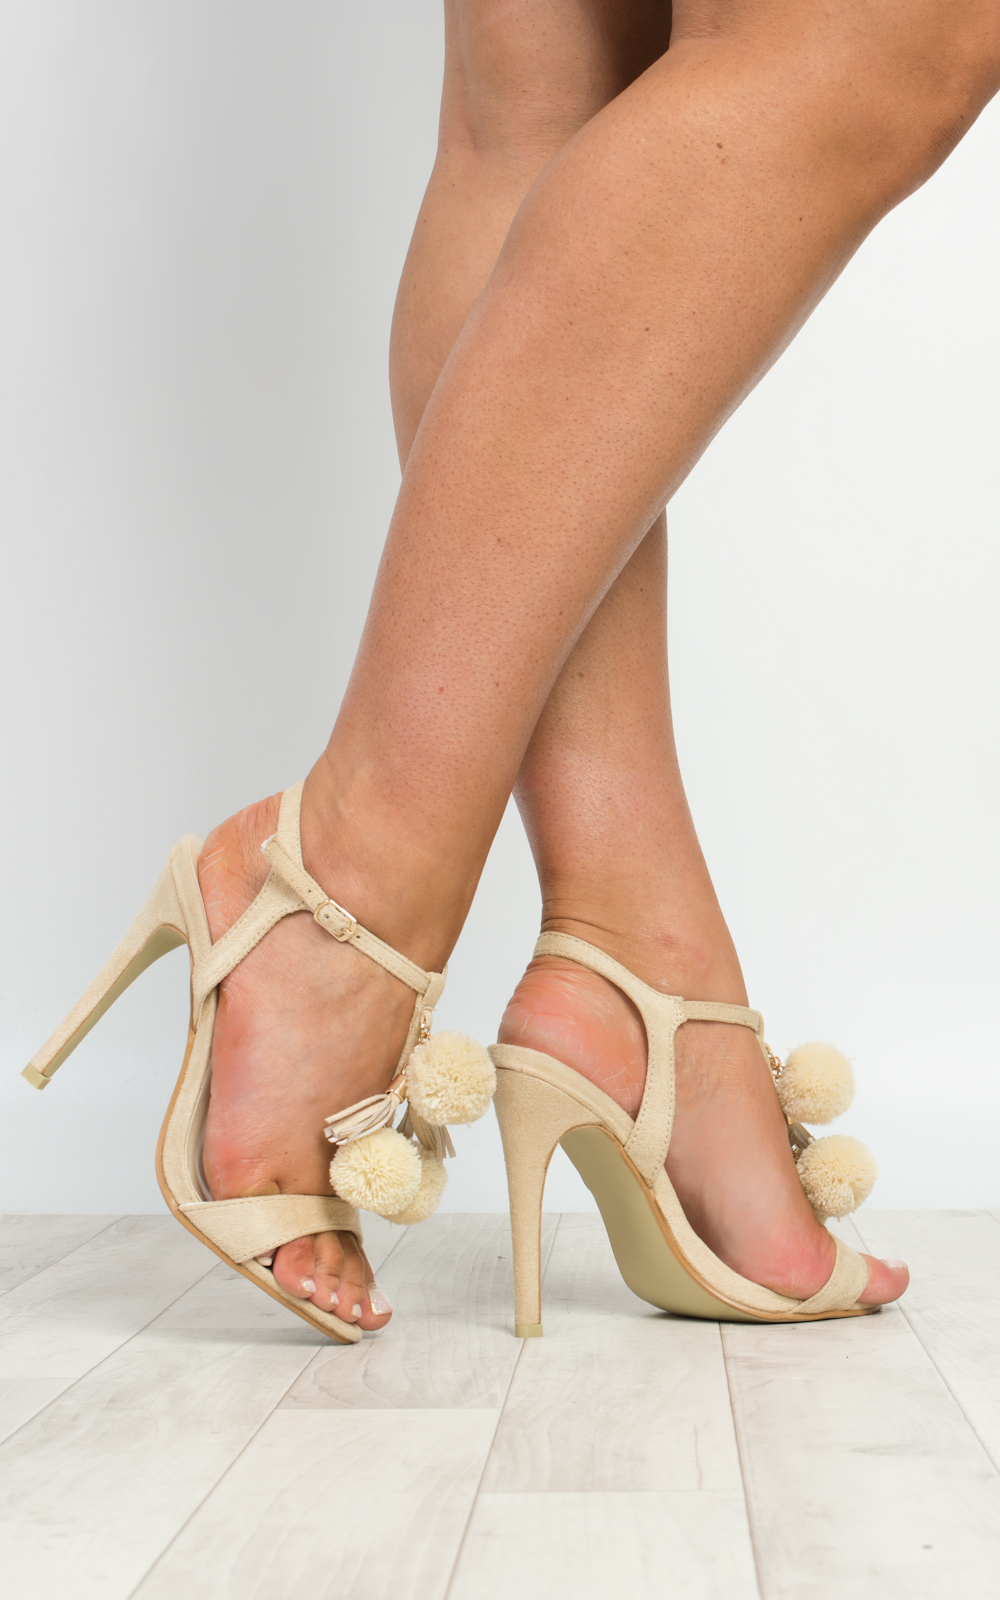 Zapatos beige Ikrush para mujer WCdfpdqa